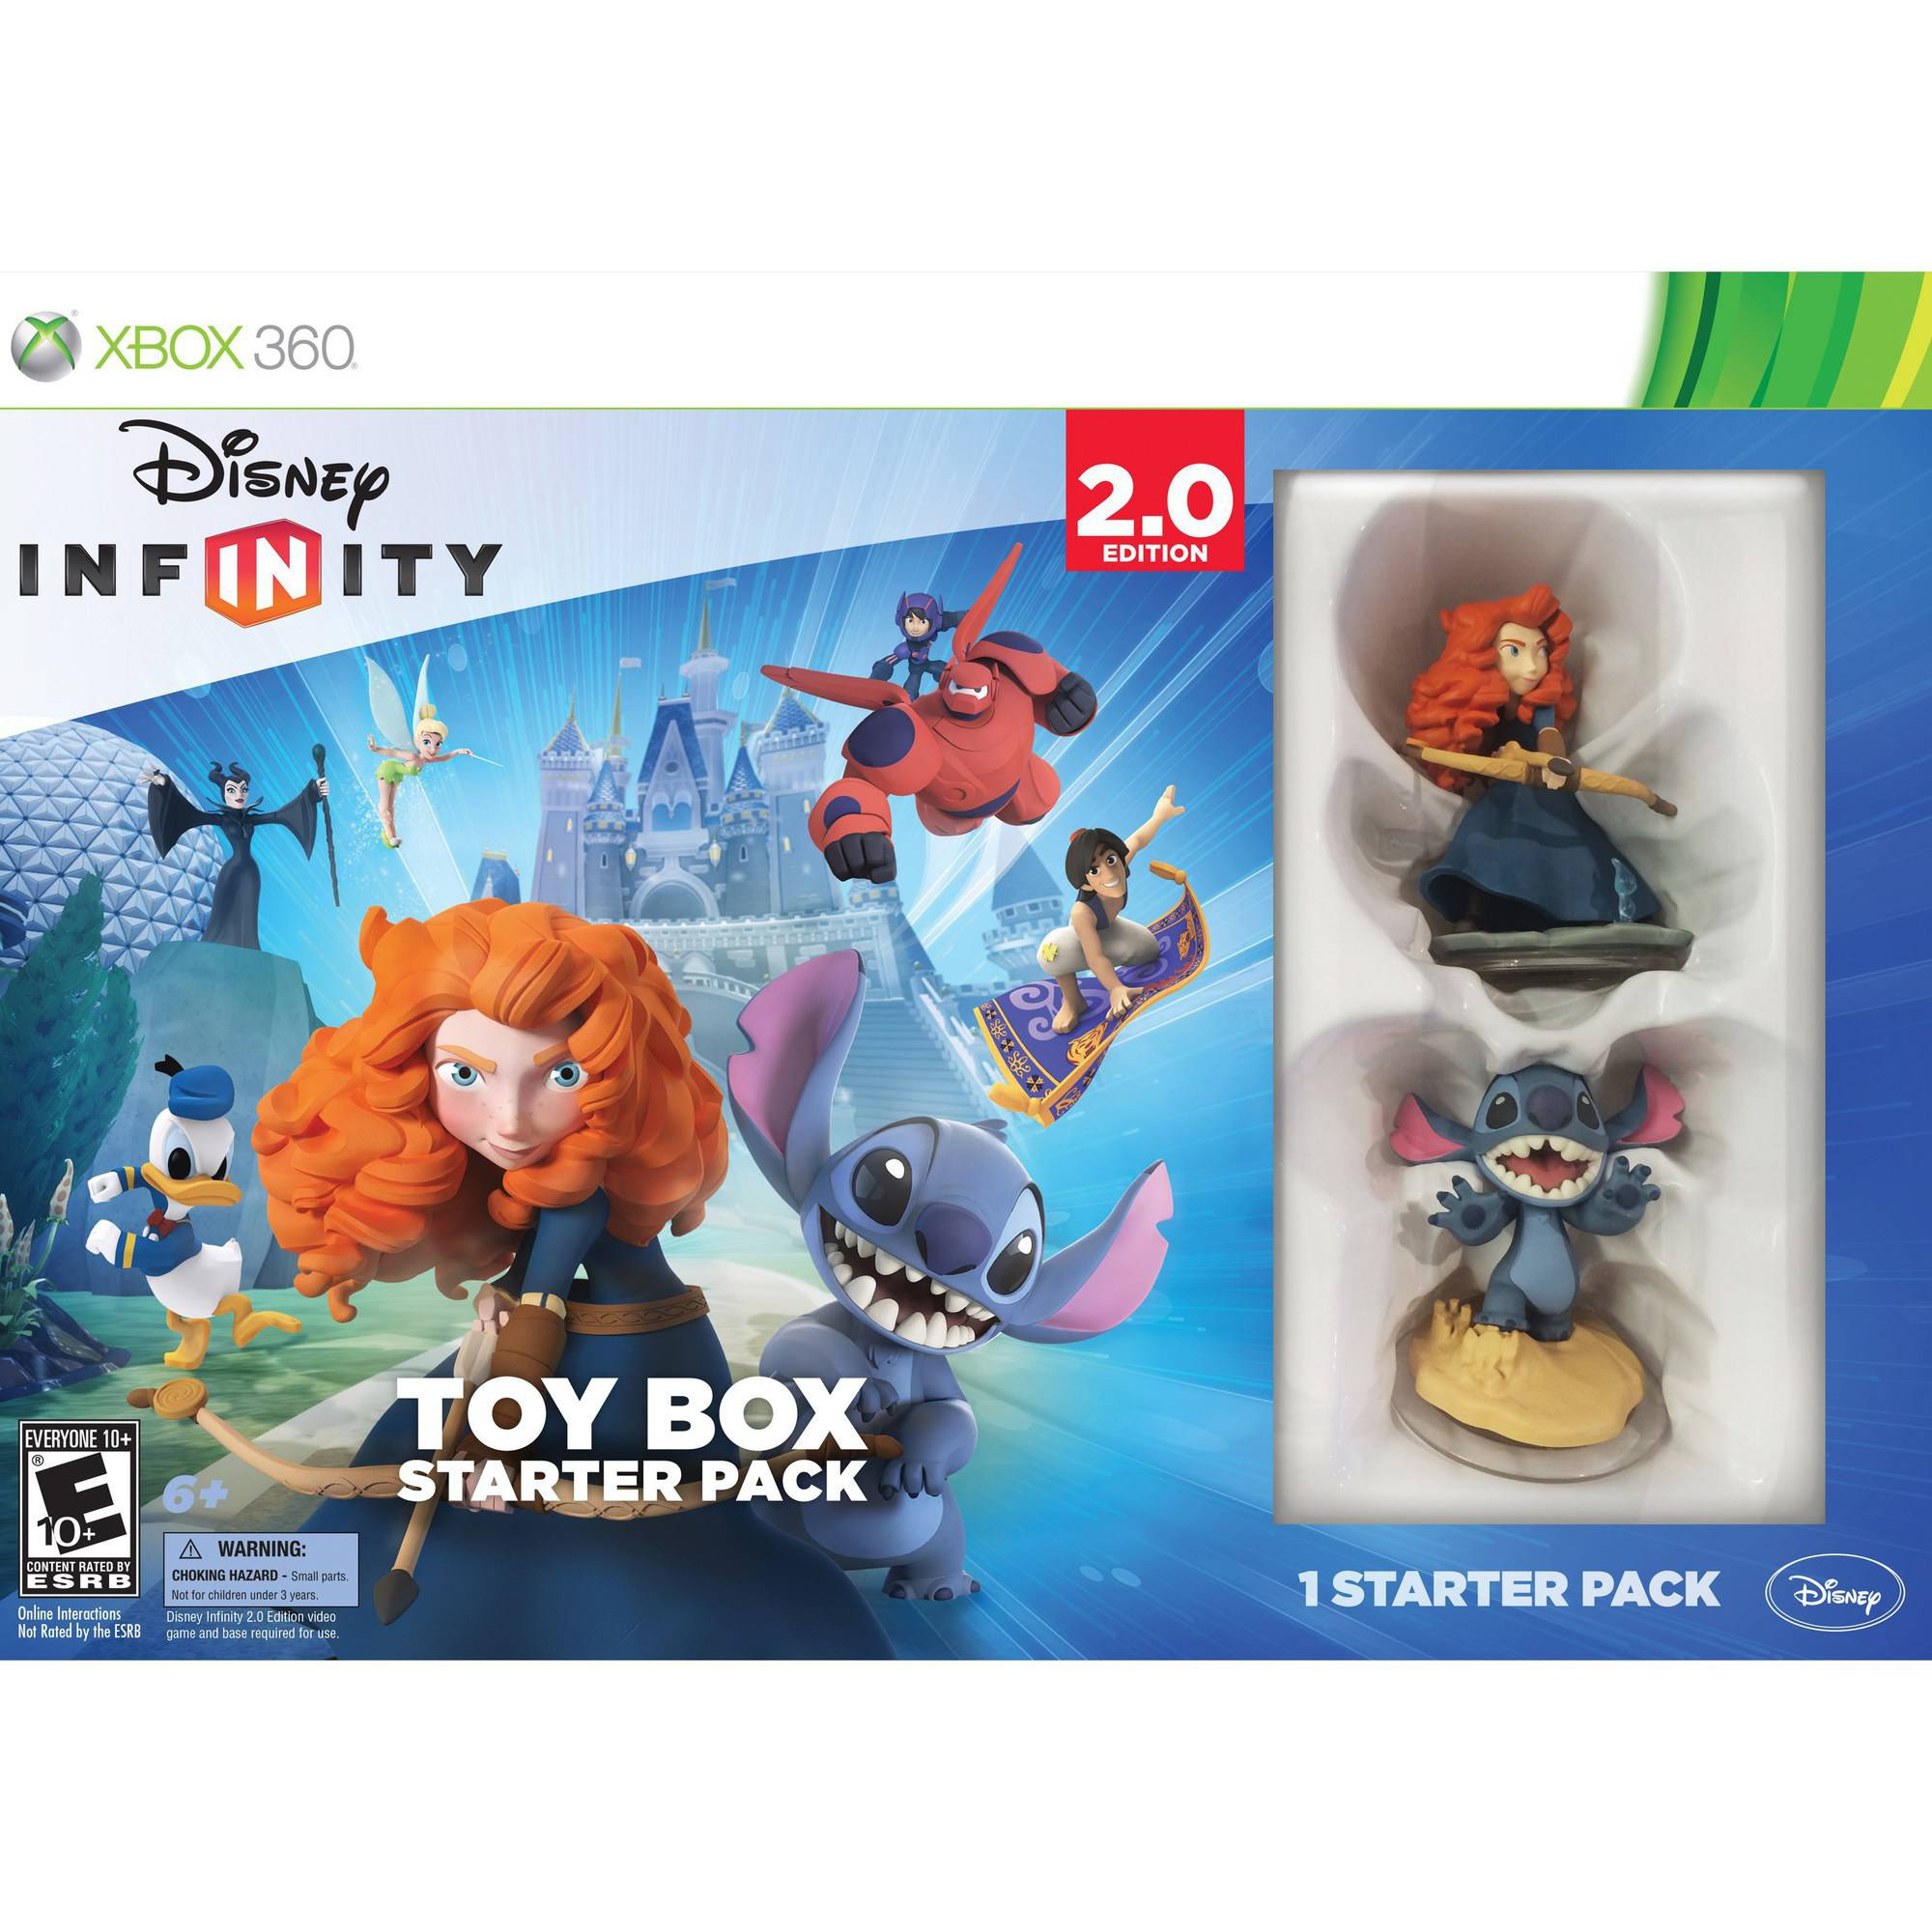 Disney Infinity: Disney Originals (2.0 Edition) Toy Box Starter Pack (Xbox 360)